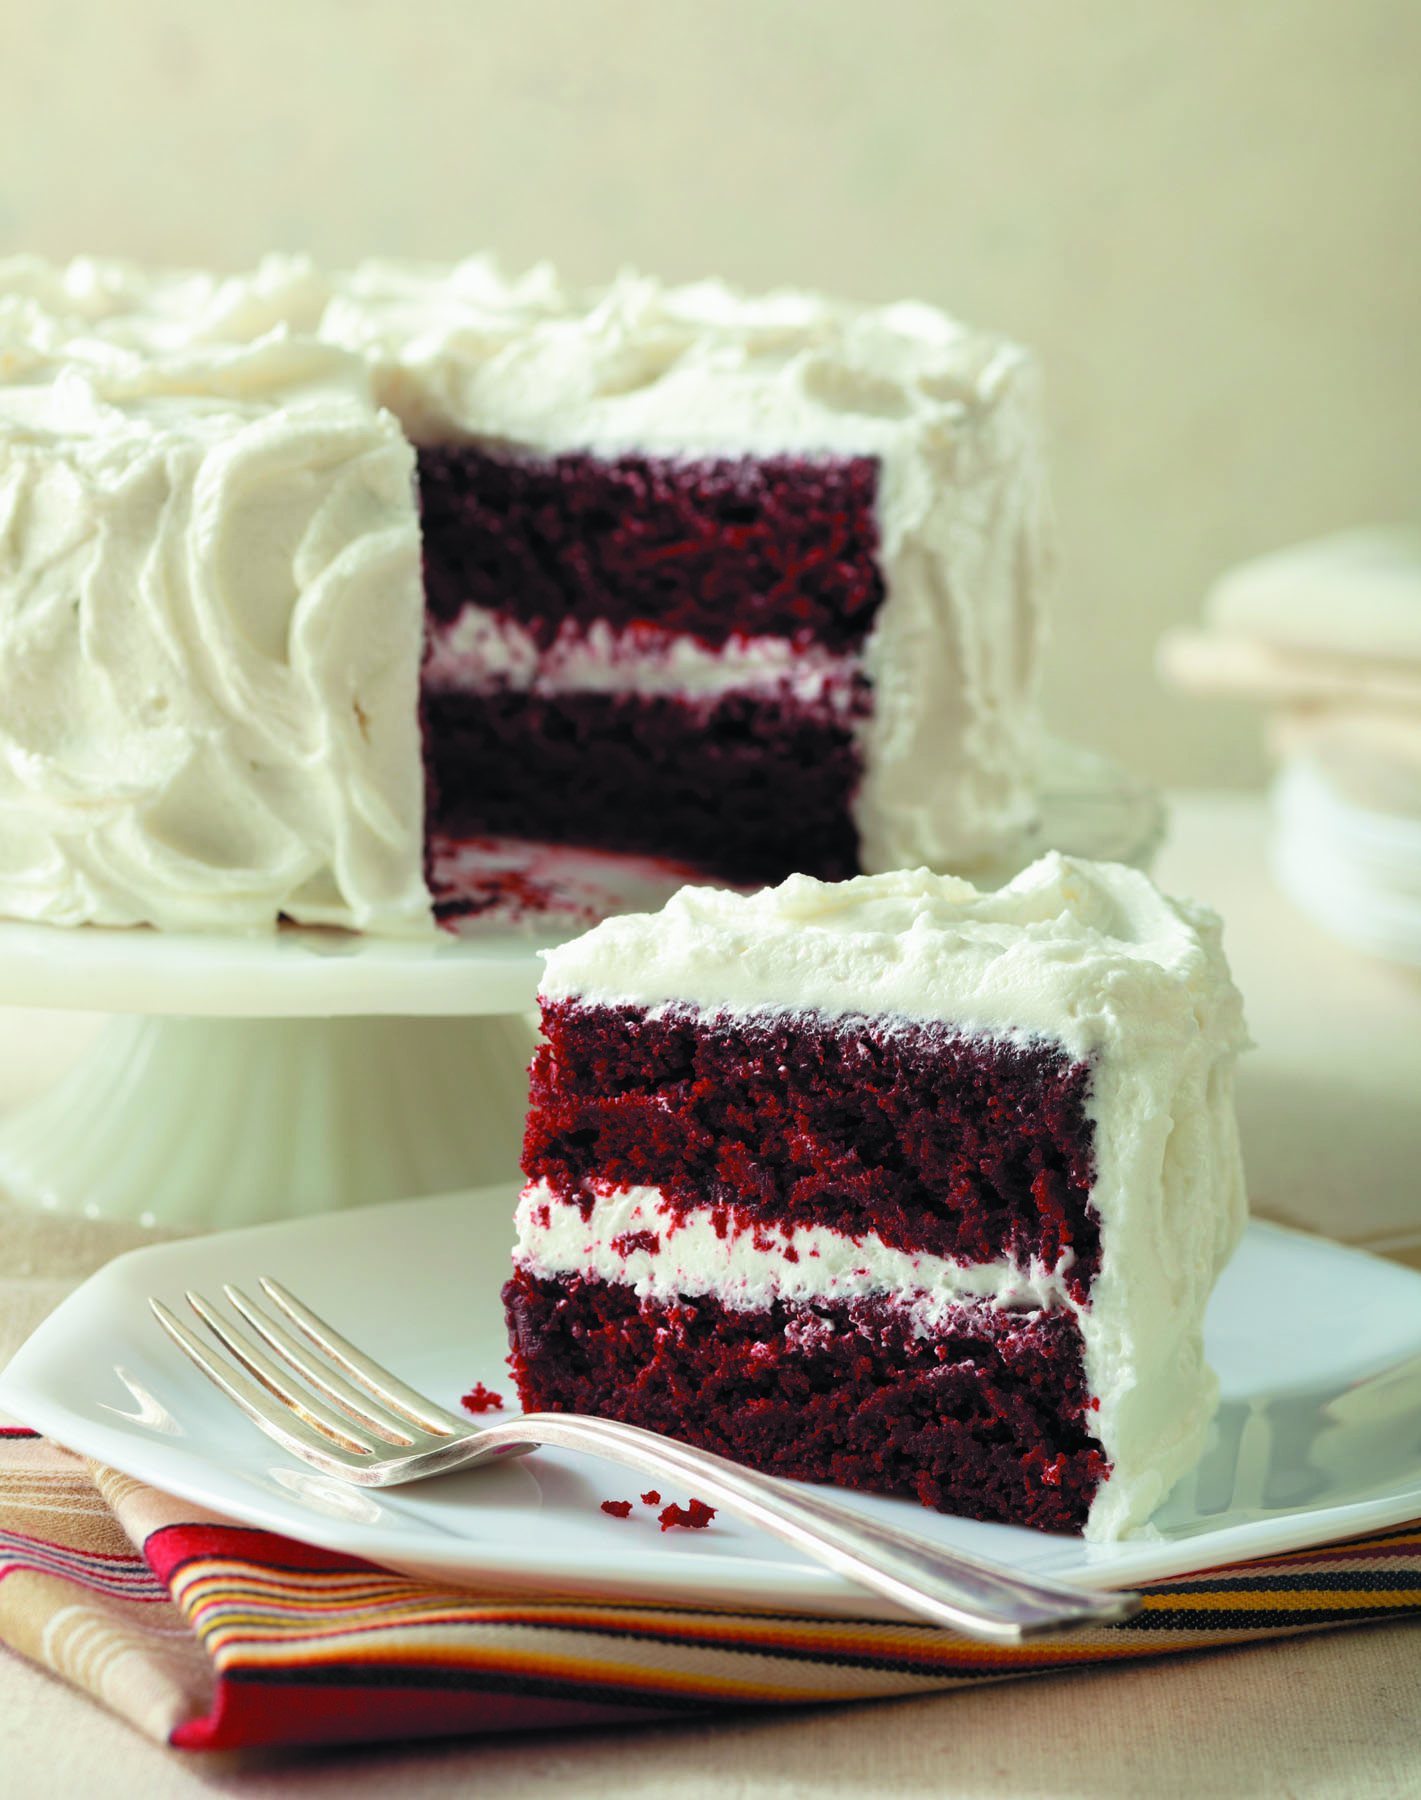 Red Velvet Cake With Velvet Frosting picture